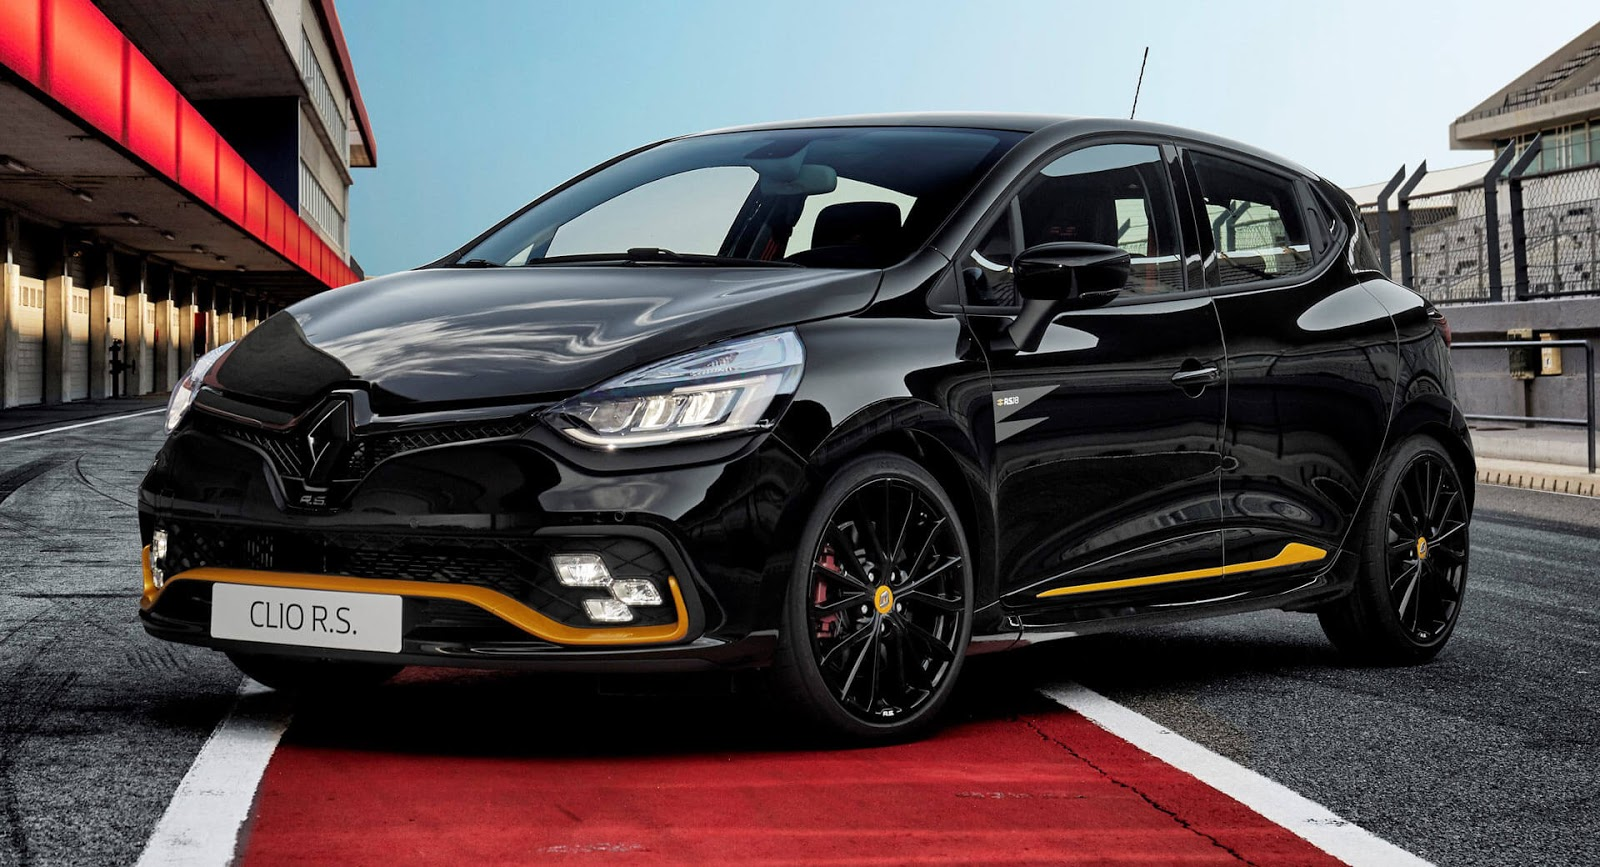 f1 inspired renault clio r s 18 arrives with a mean stance carscoops. Black Bedroom Furniture Sets. Home Design Ideas